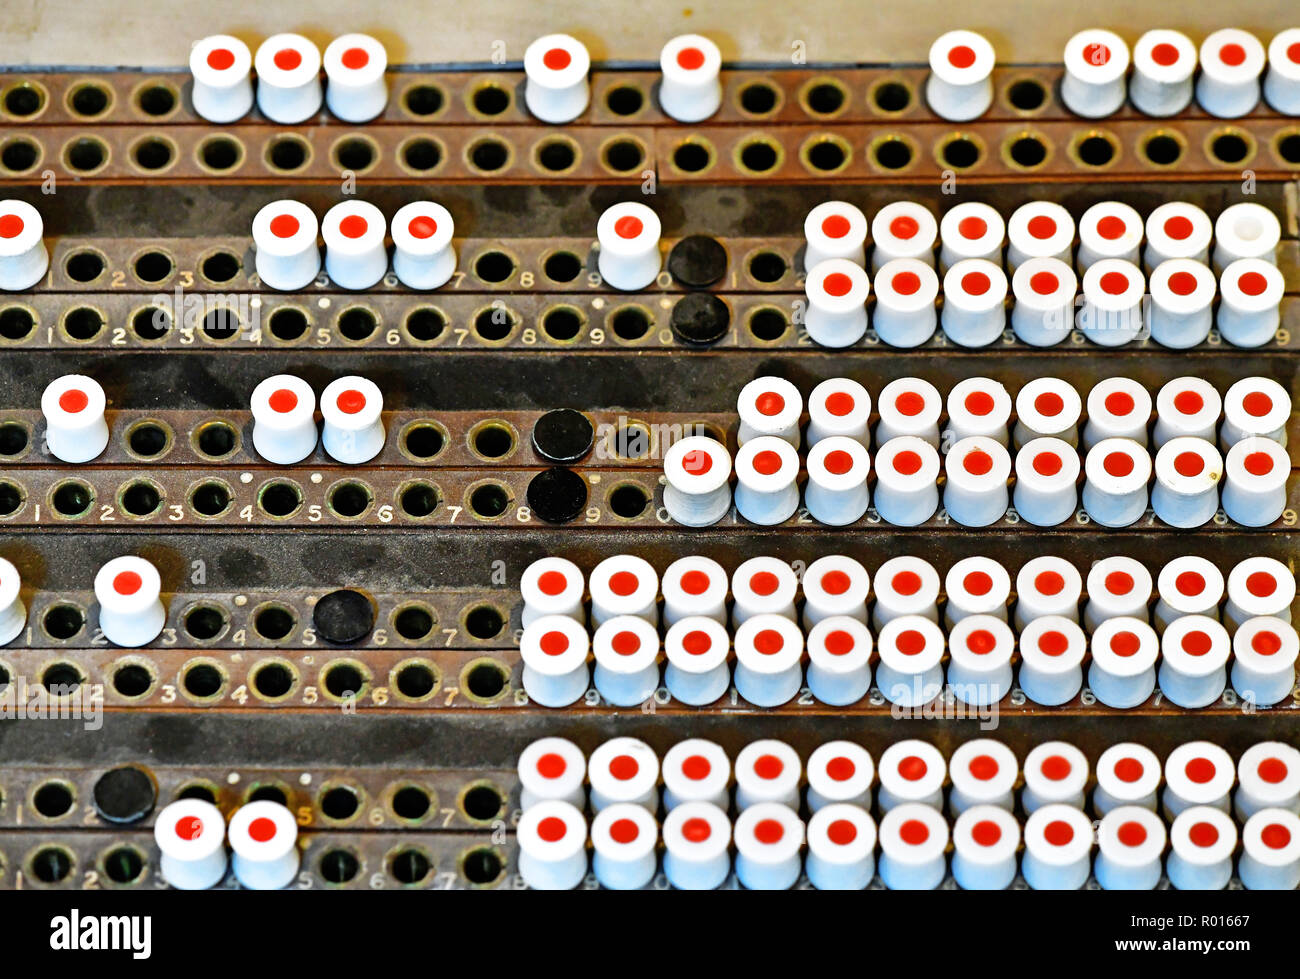 Bletchley Park part of Colossus decoding machine plugboard system Stock Photo